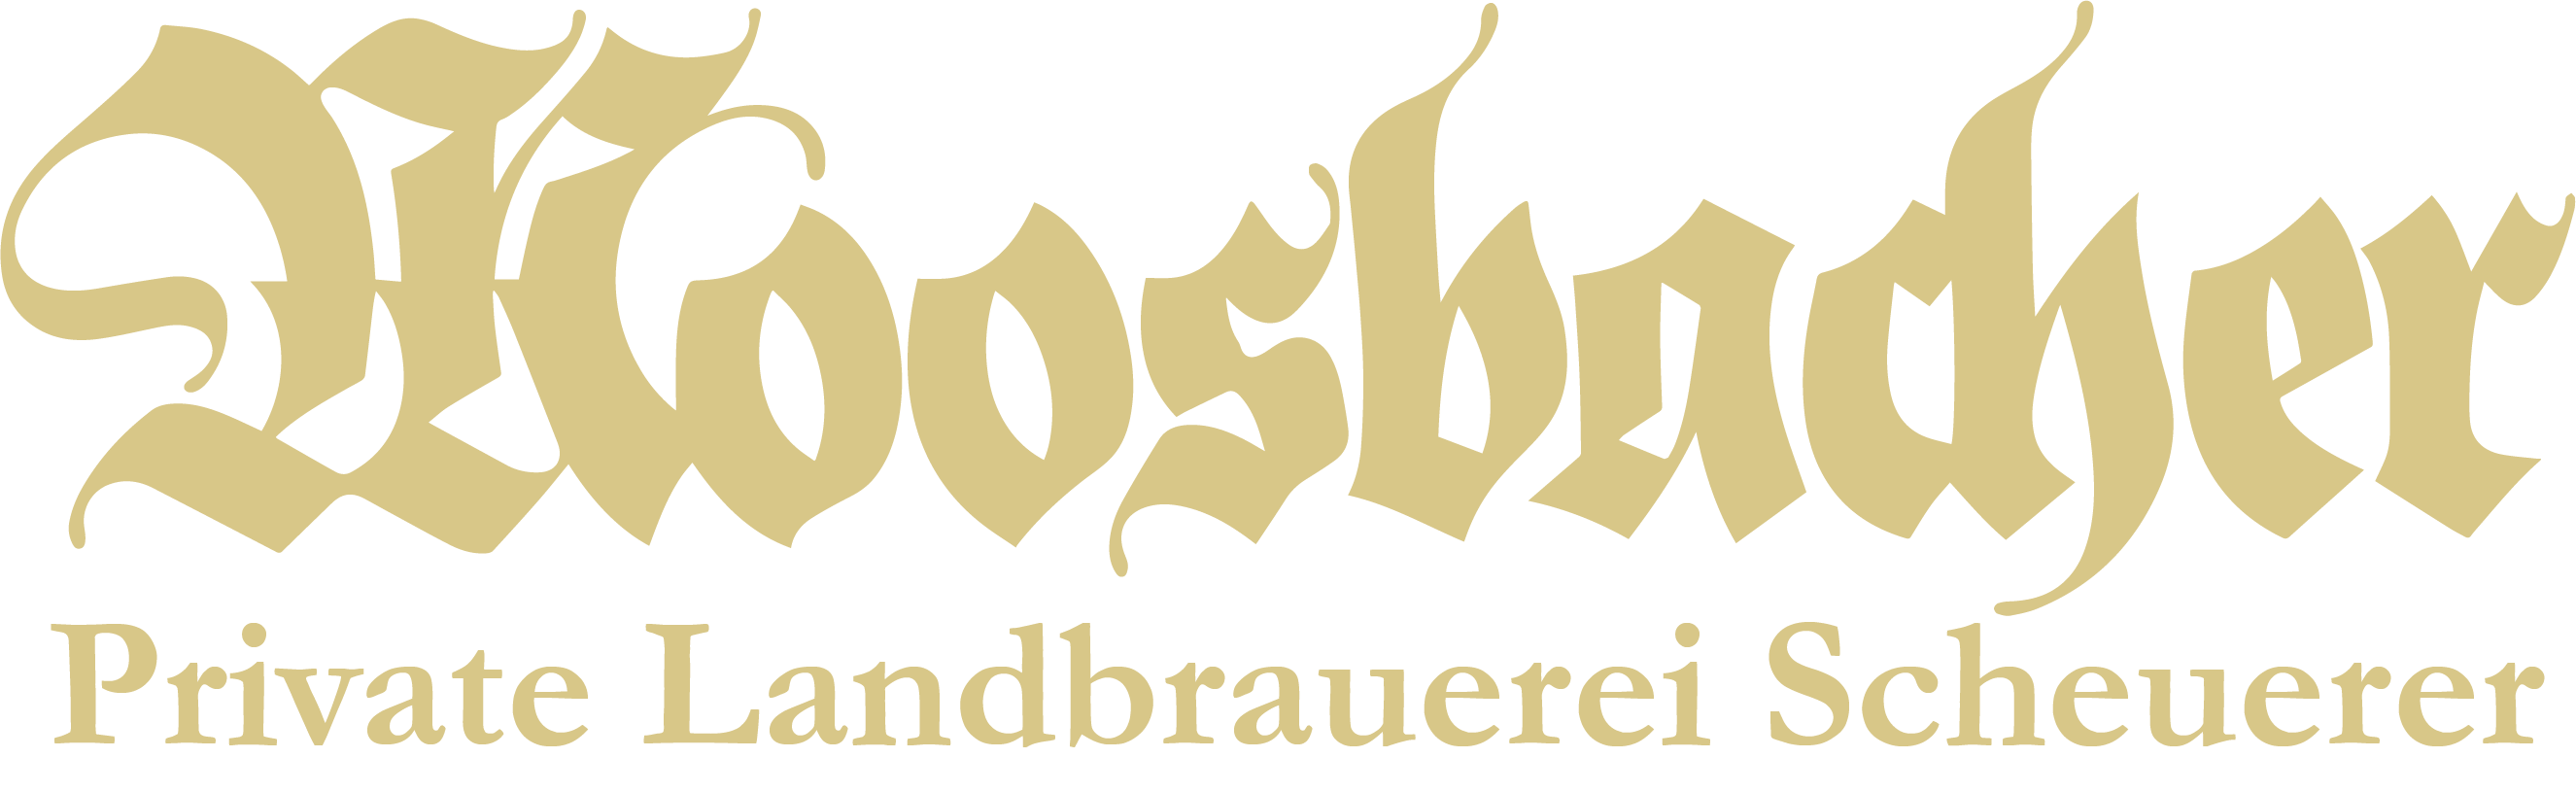 Moosbacher private Landbrauerei